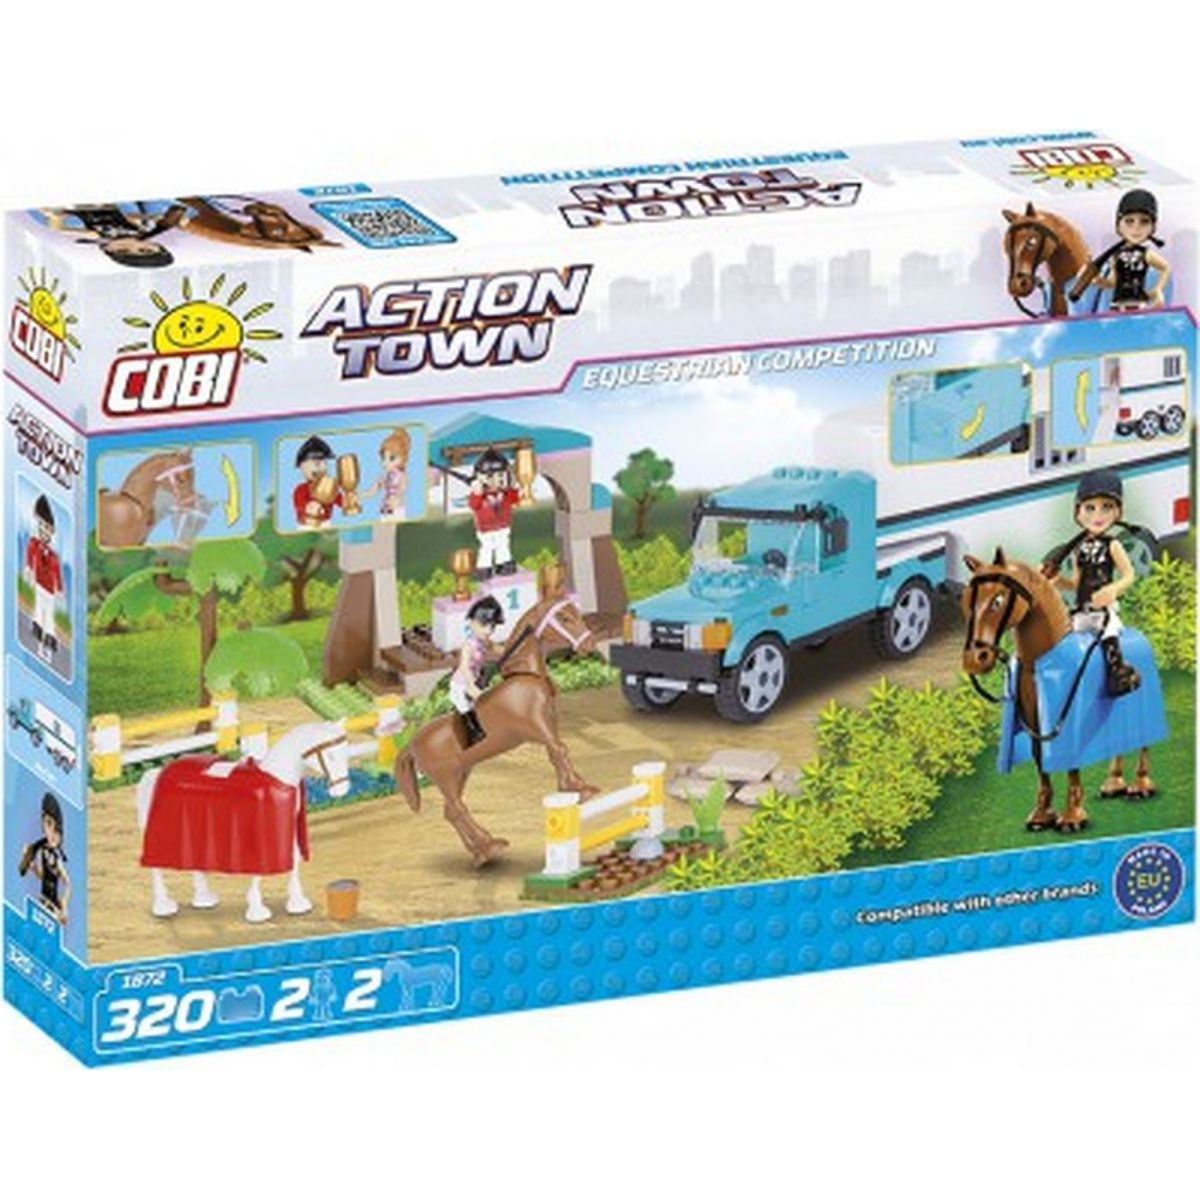 Cobi Action Town 1872 Equestrian Competition